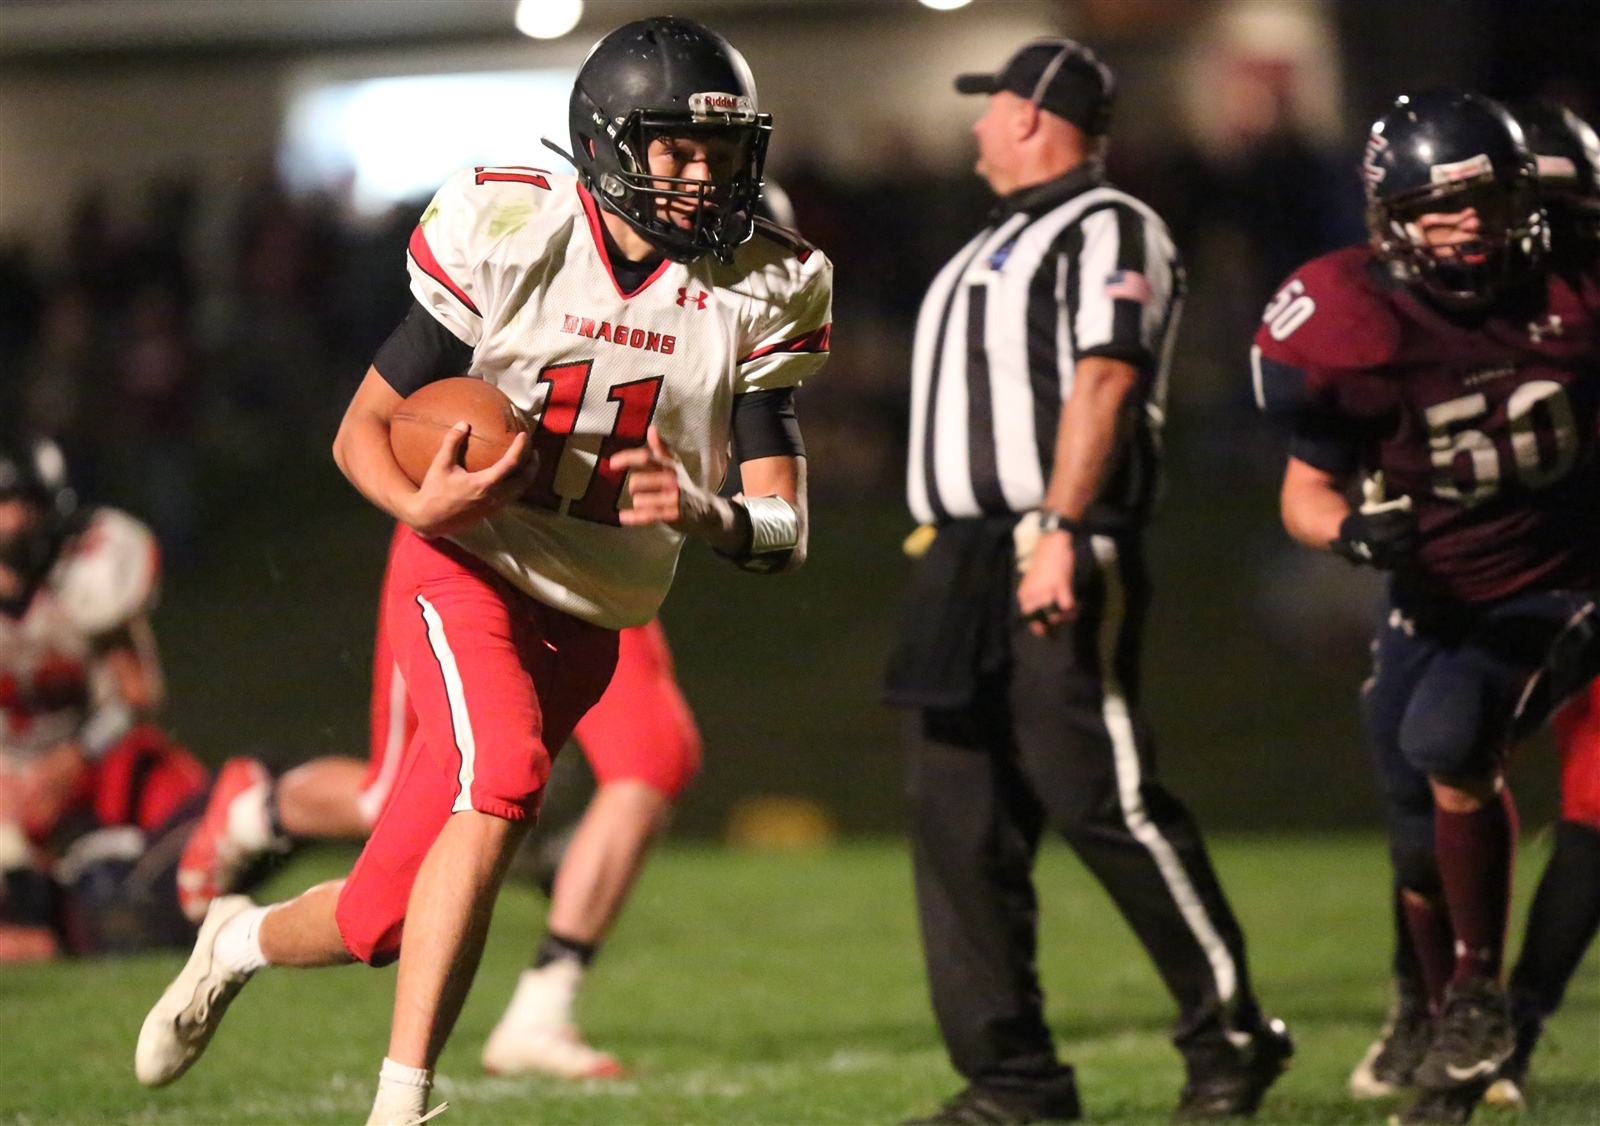 Mitch Padilla and the Maple Grove Red Dragons have a first-place showdown in Class D on Friday night against fellow unbeaten Silver Creek in Bemus Point.